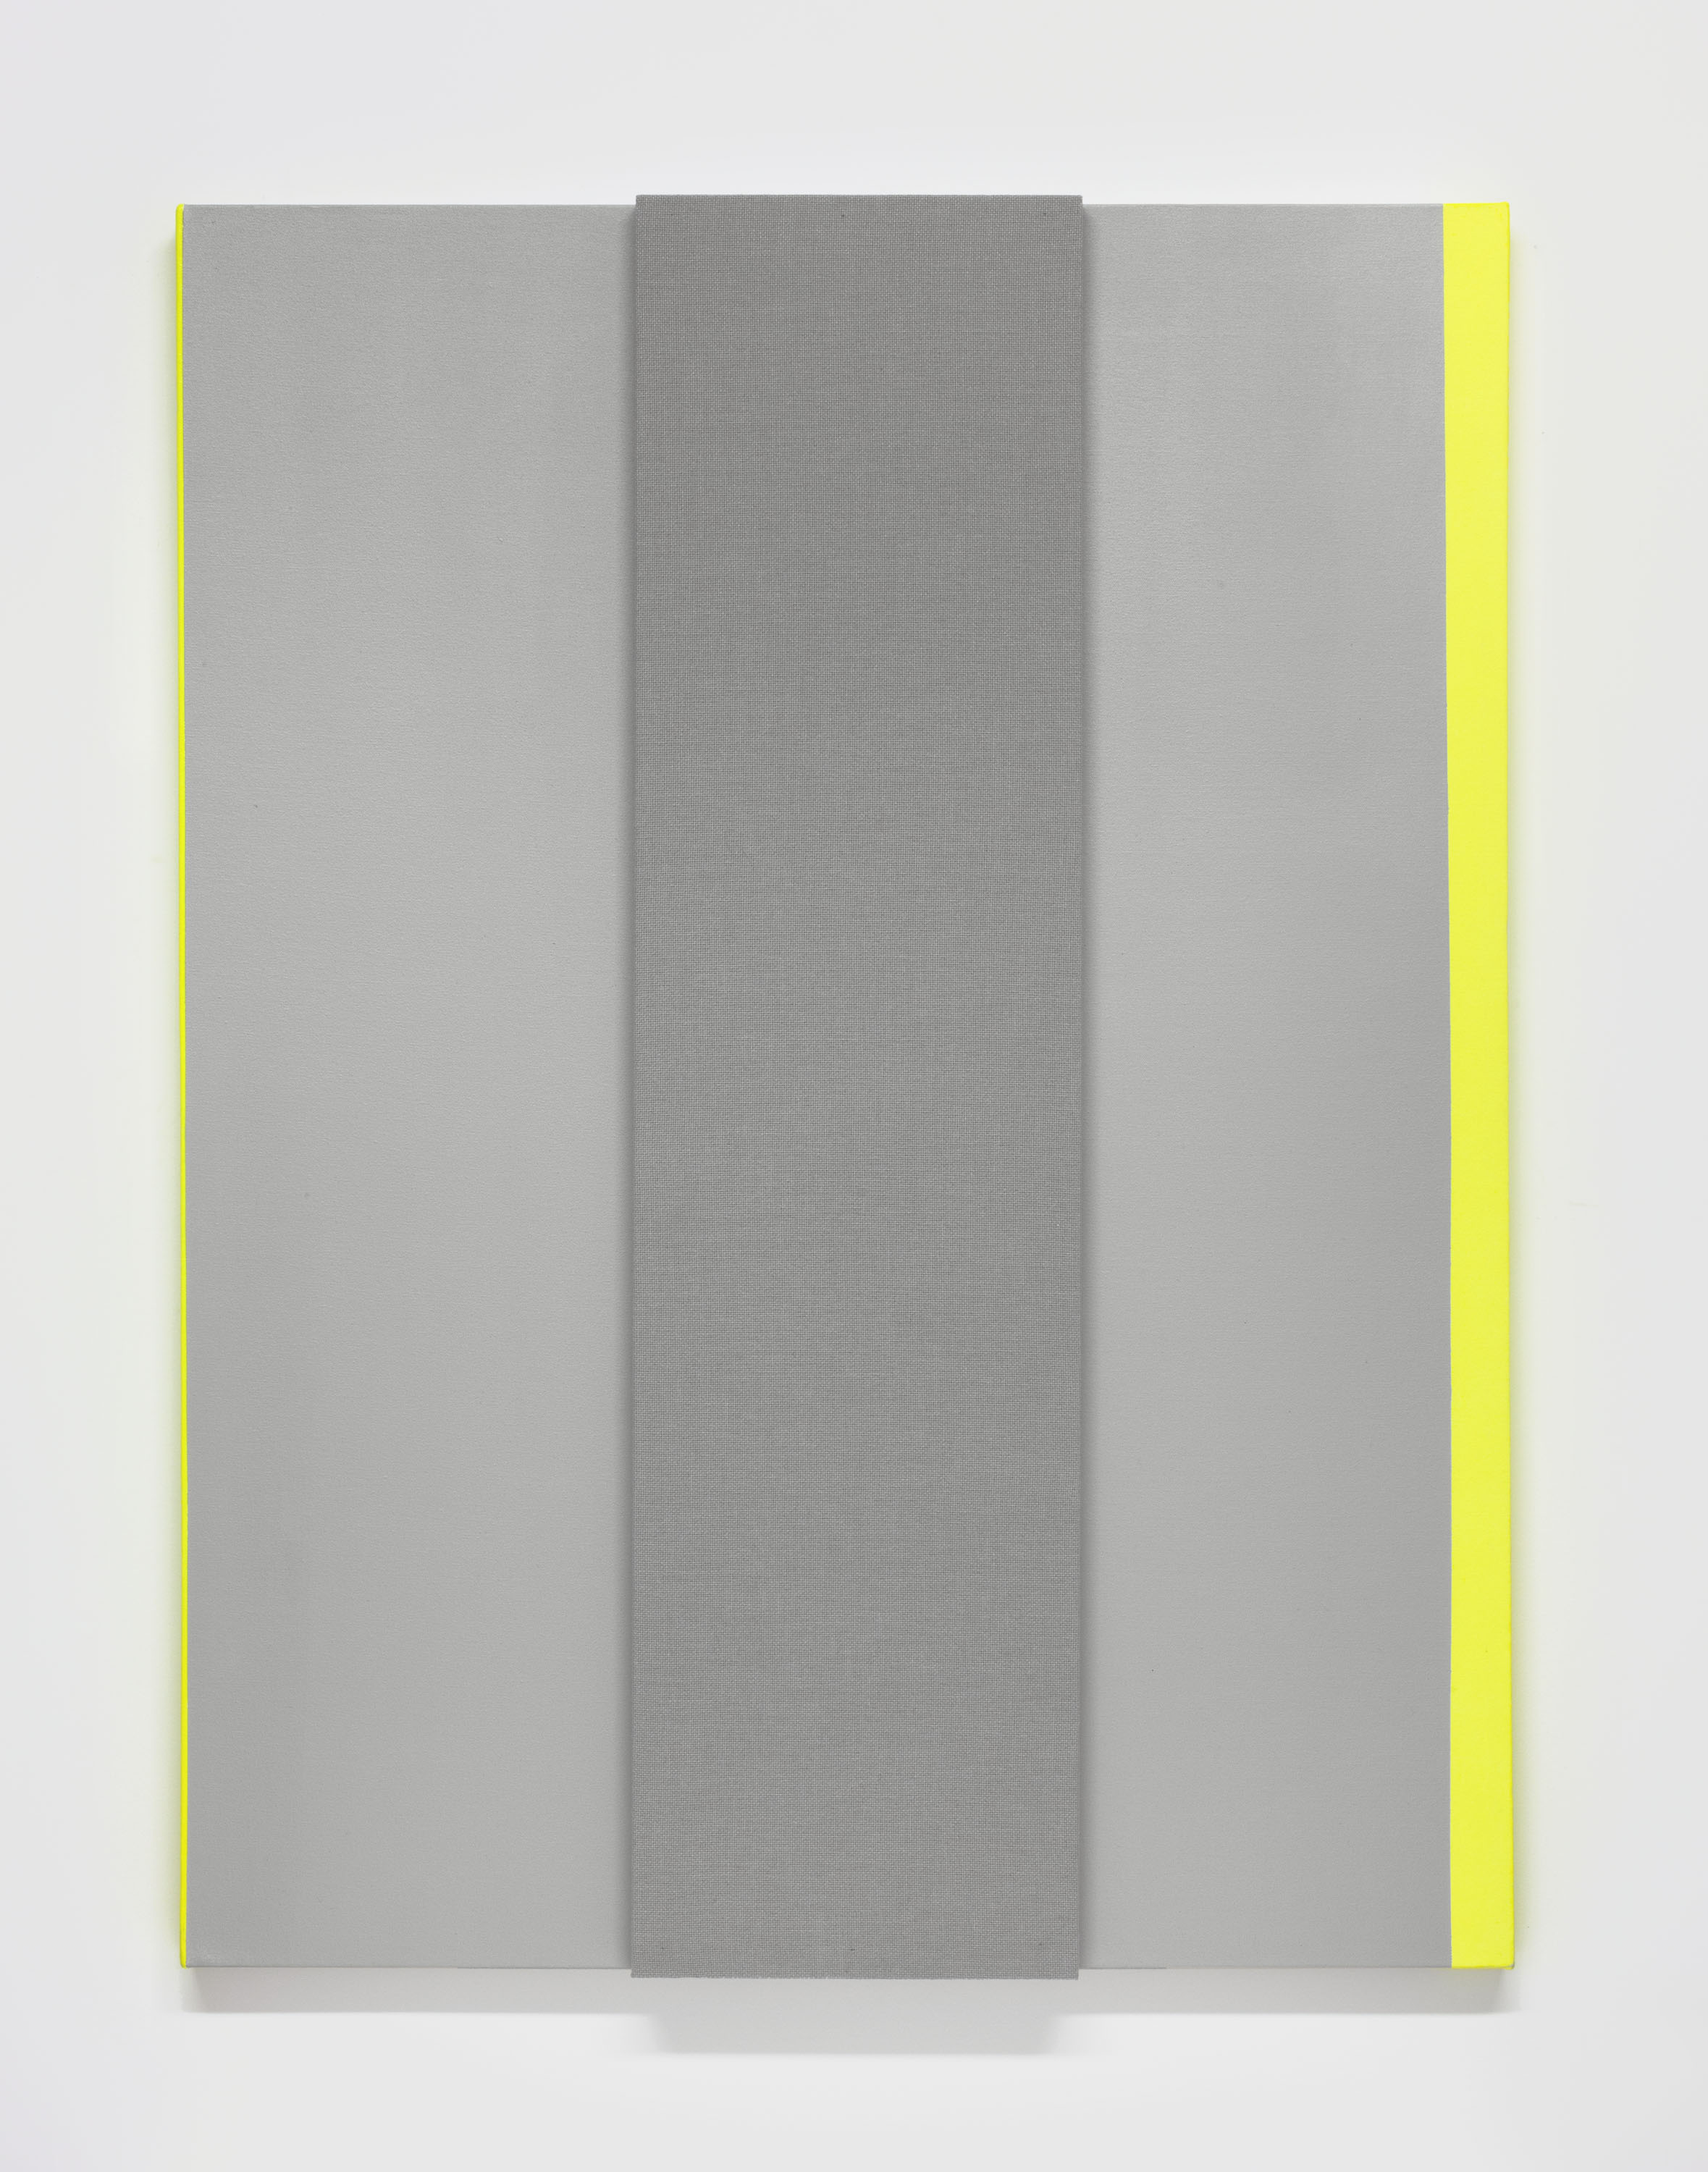 Light Gray with Bright Note #1 --Acoustic absorber panel and acrylic paint on canvas, 36 x 48 inches each, 2013.